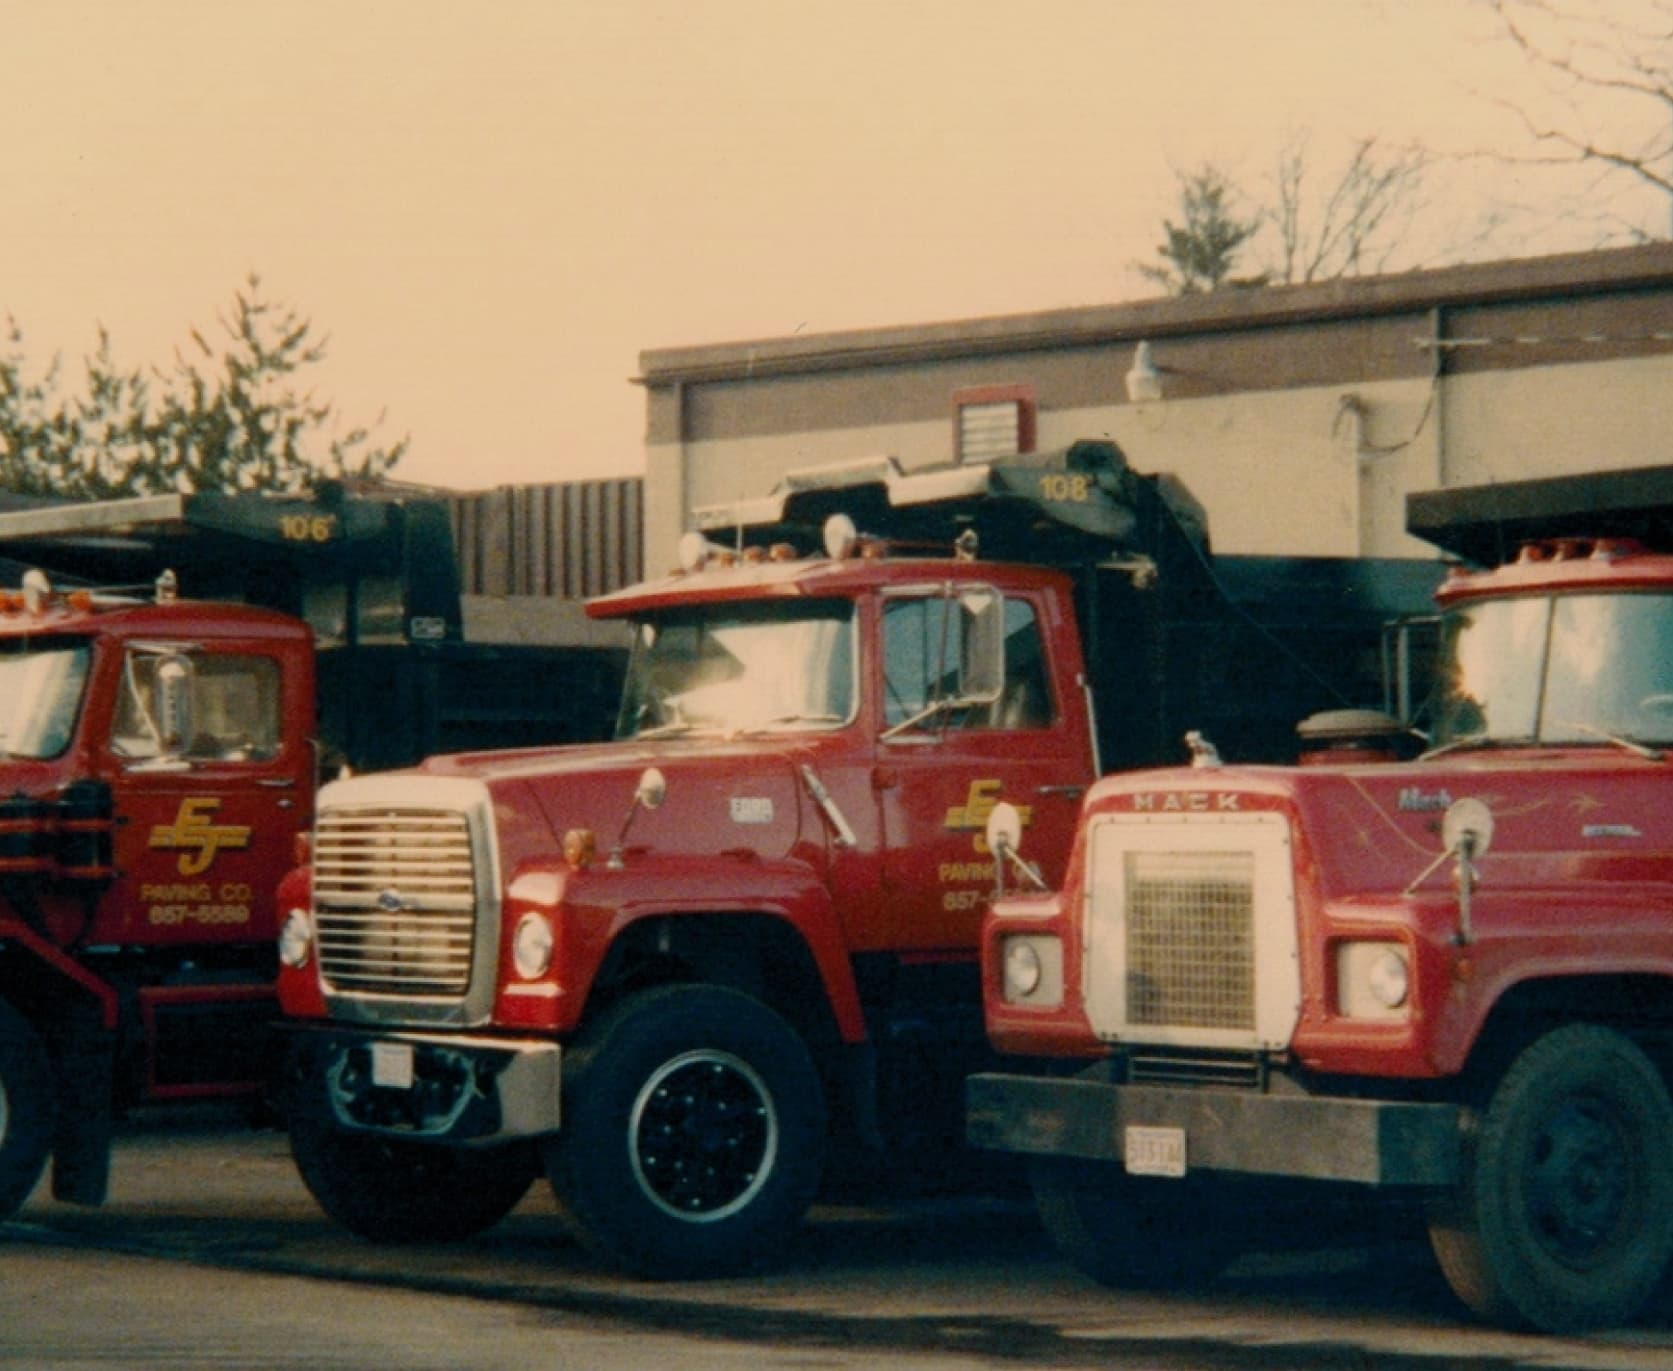 A picture of EJ Paving dump trucks from the early days of the company.